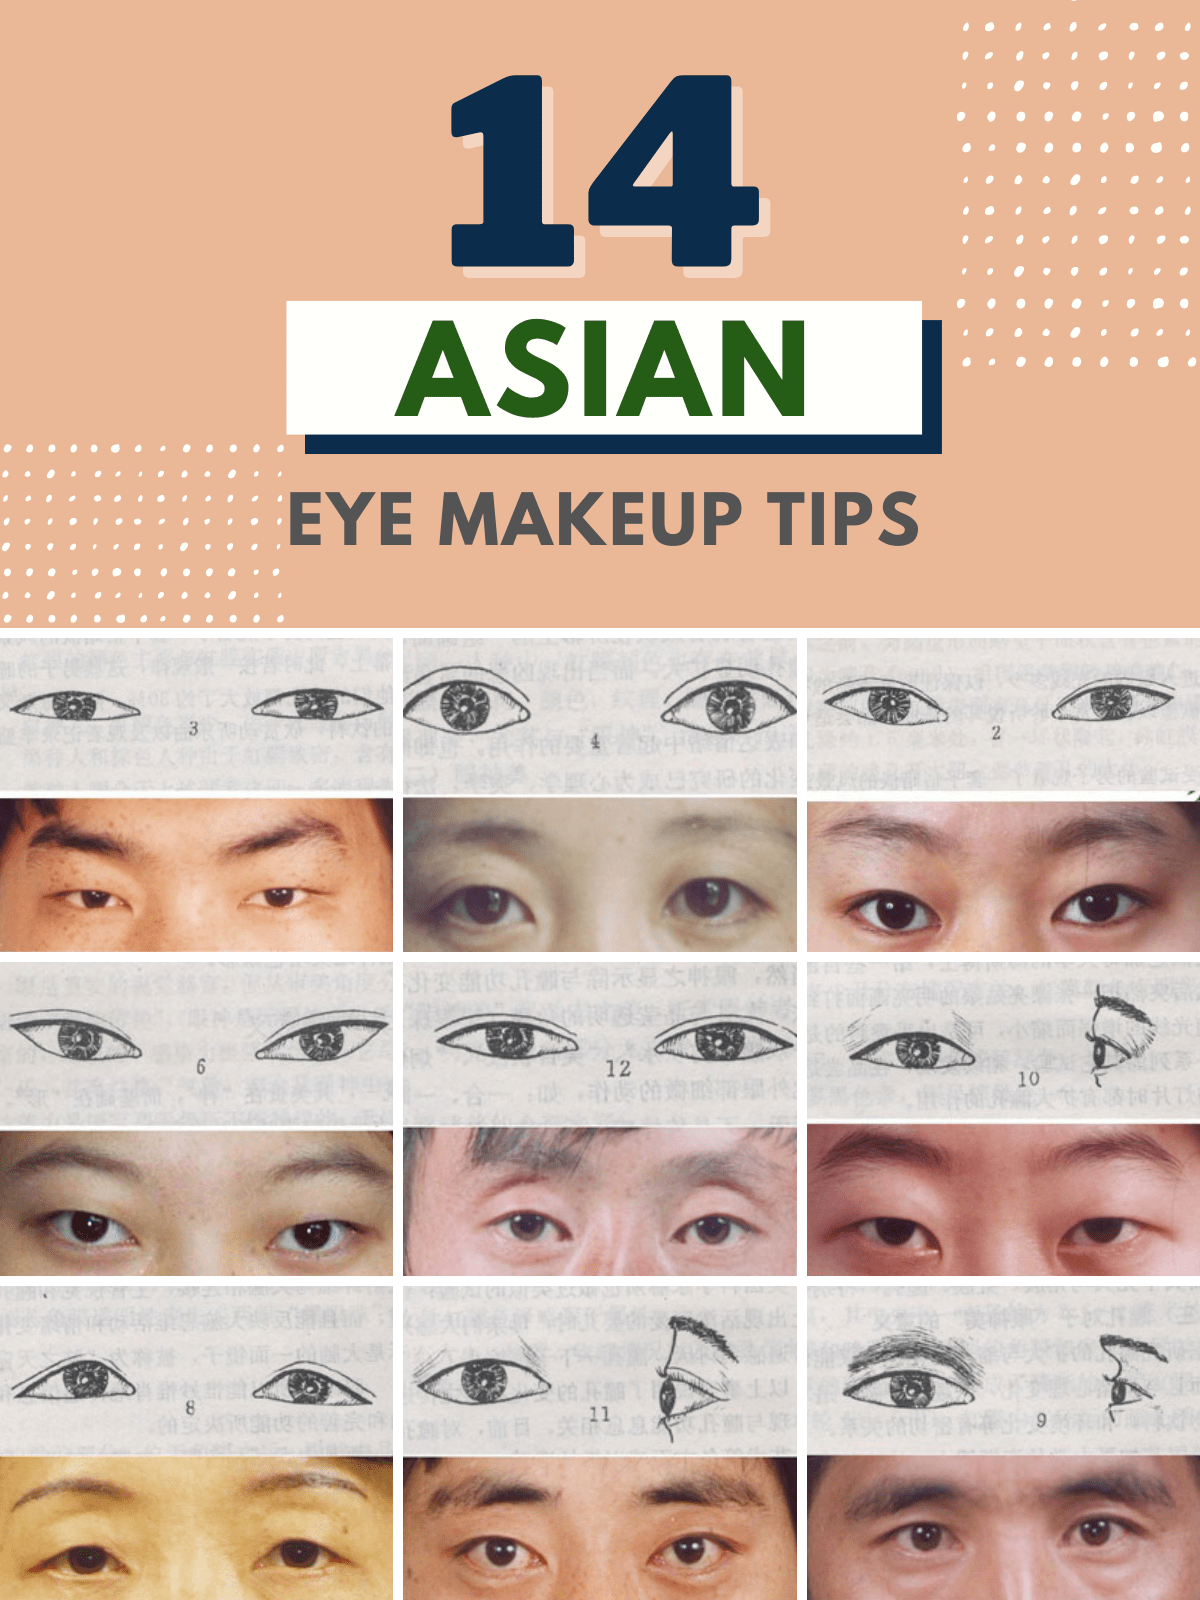 different types of asian eyes and makeup tips